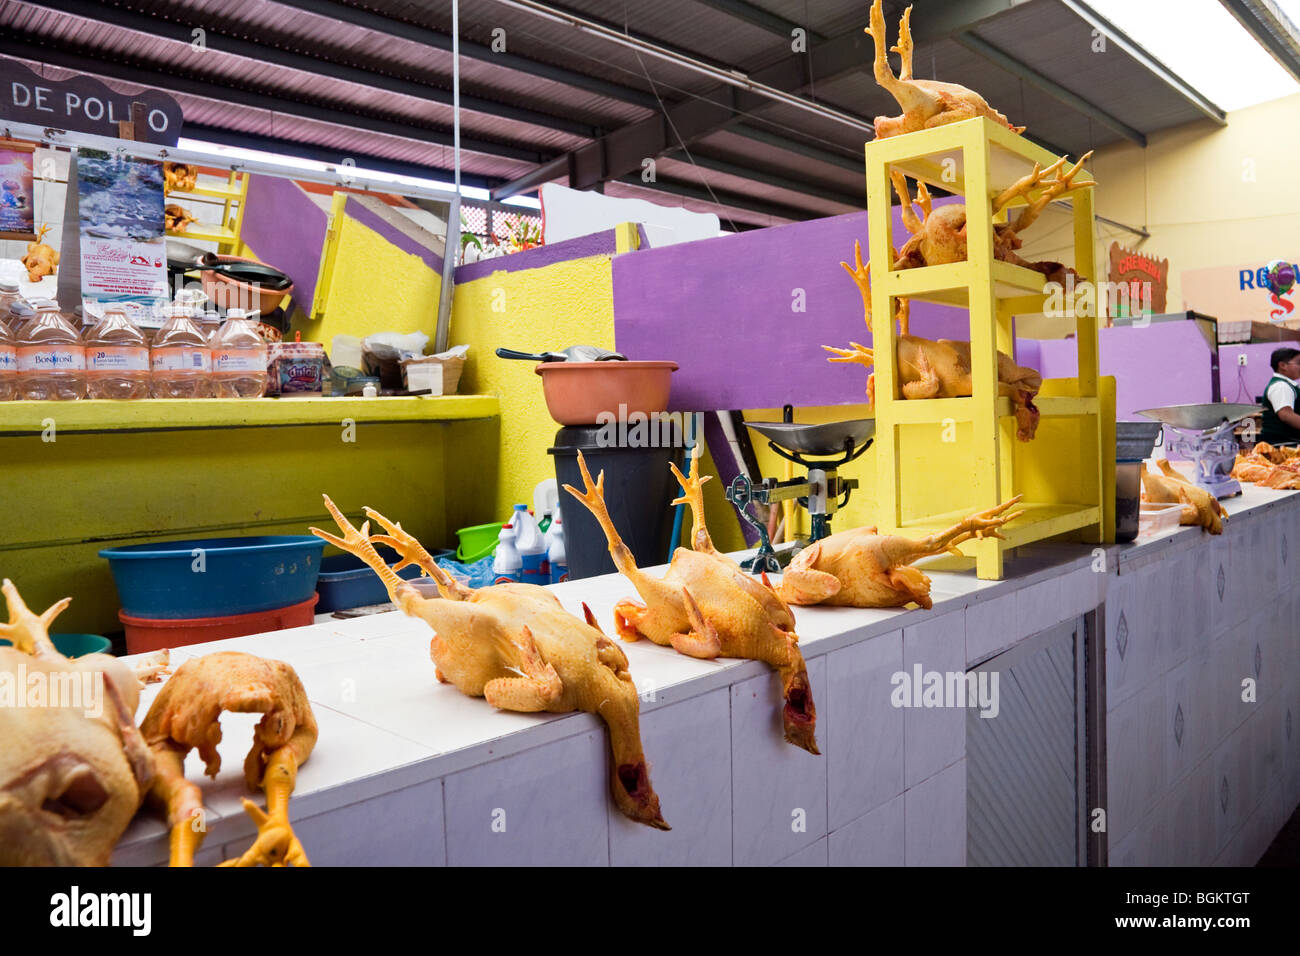 immaculate brightly colored poultry butcher stall with comical macabre display of whole chickens in Mexican market - Stock Image